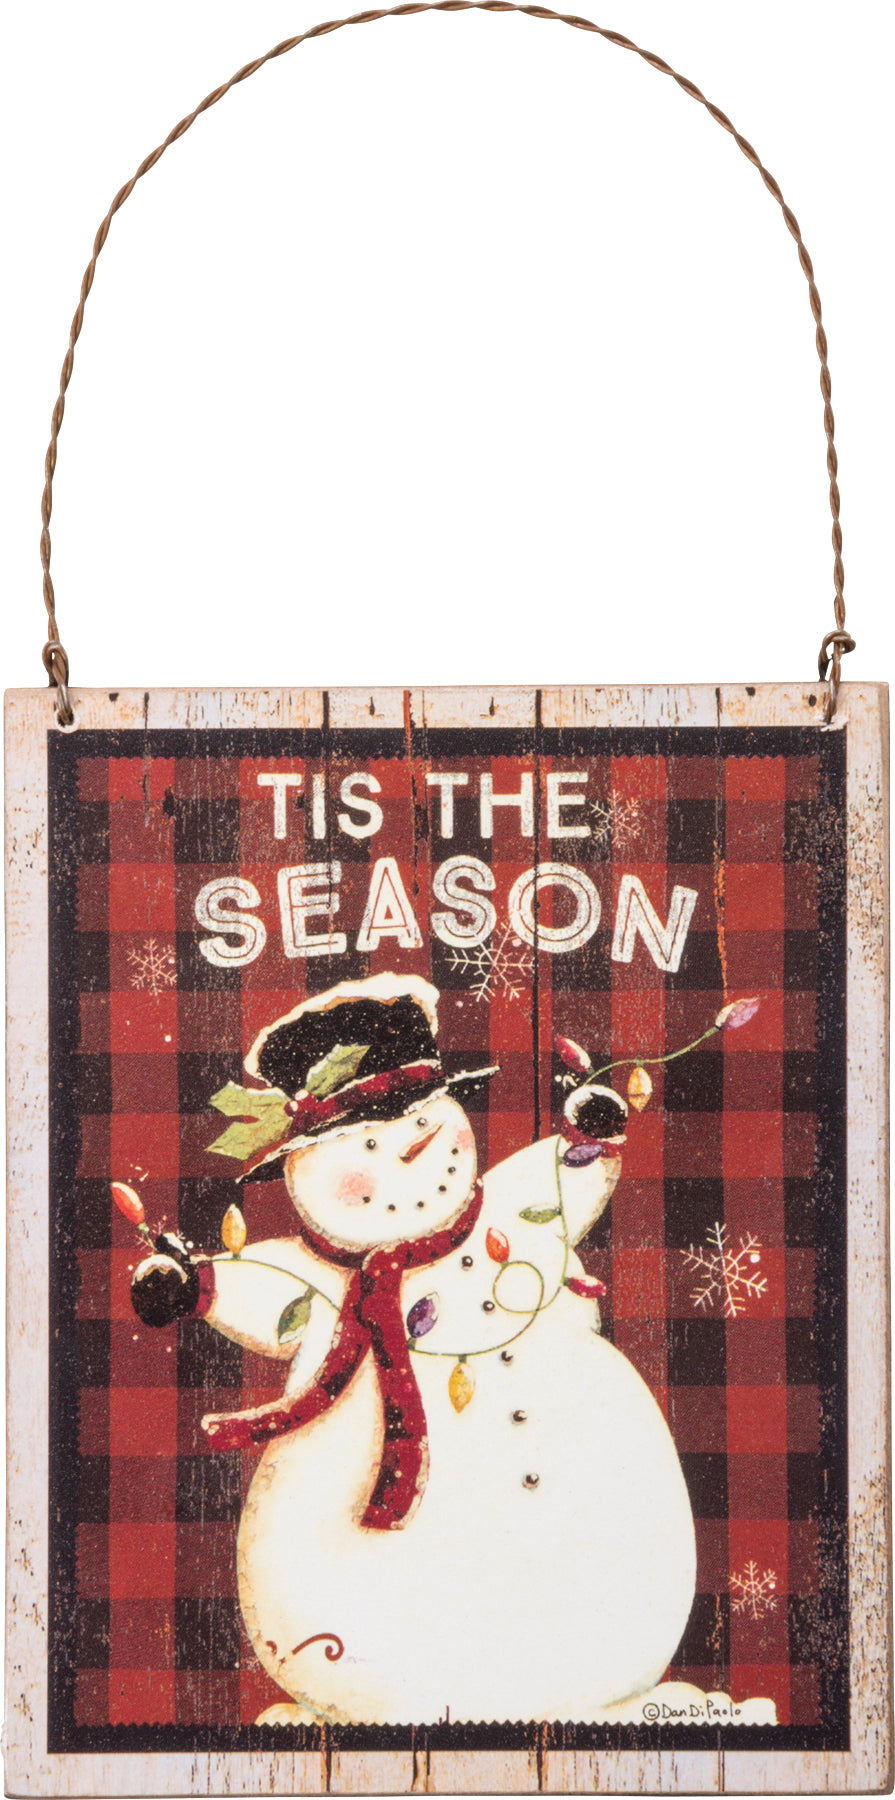 Tis the Season Wall Hanging